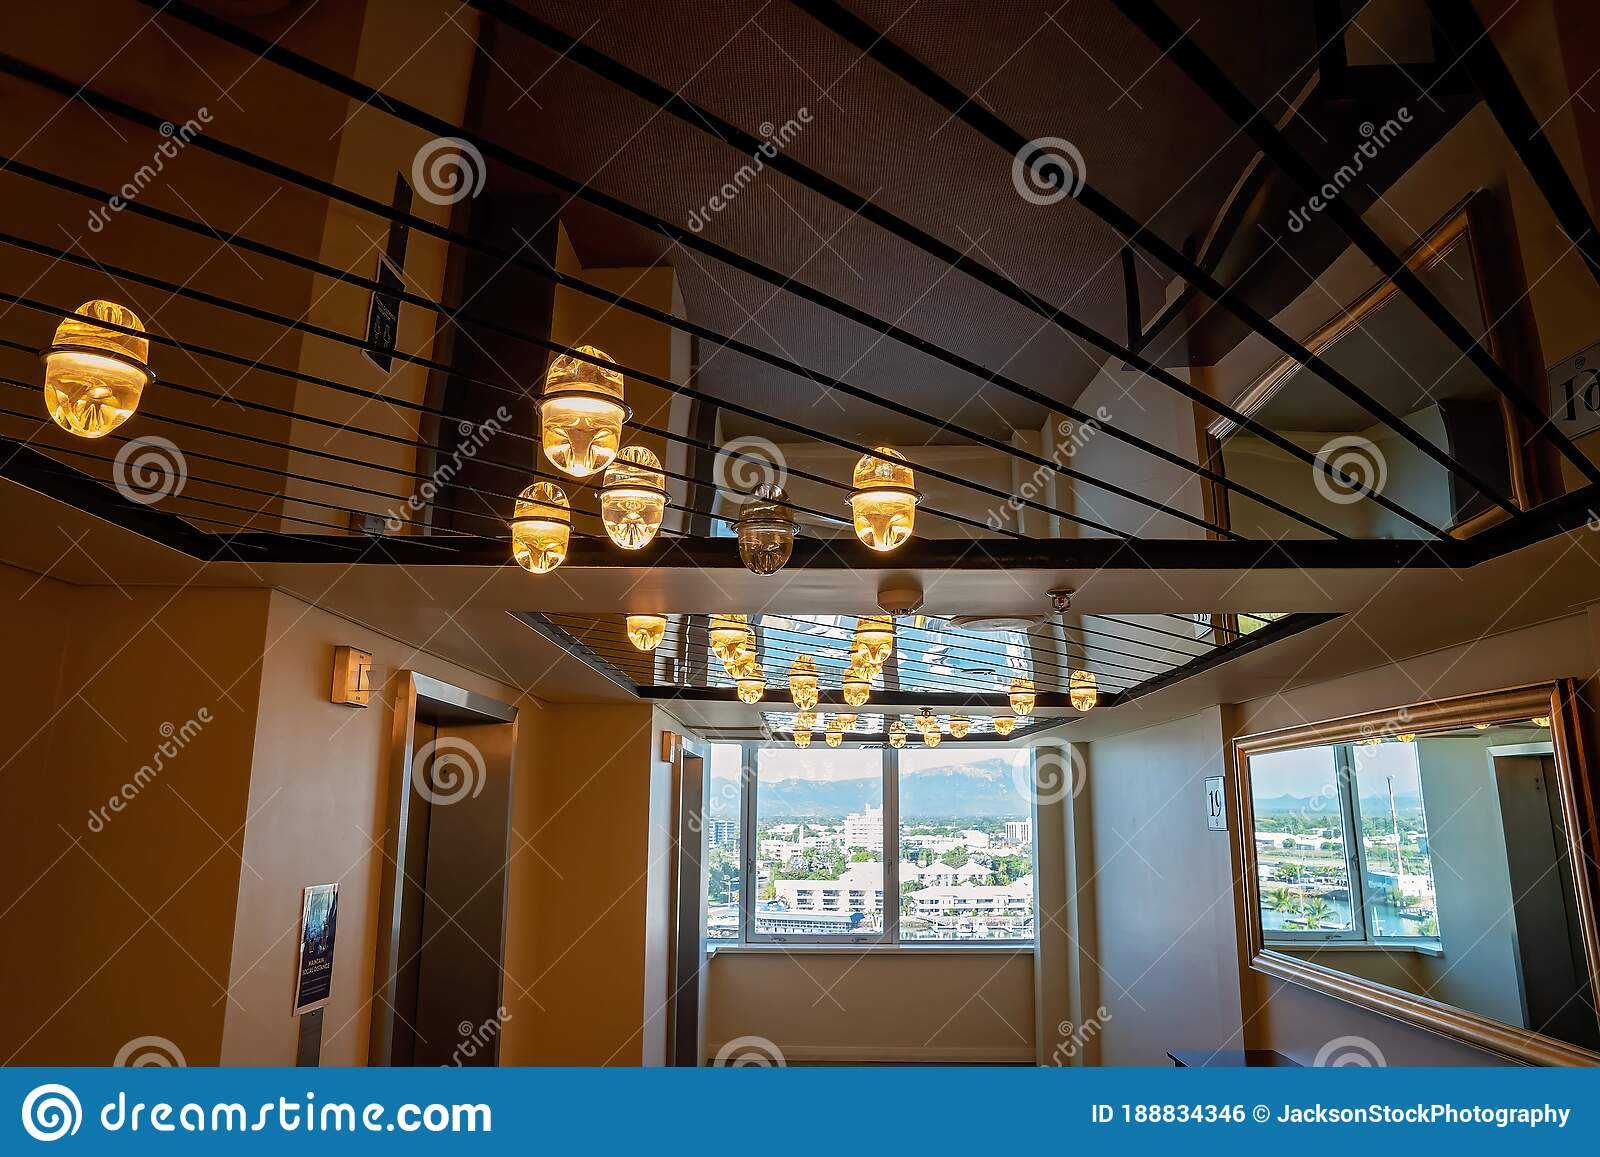 Ceiling Lights And A View At Luxury Hotel Editorial Photo Image Of City Architecture 188834346